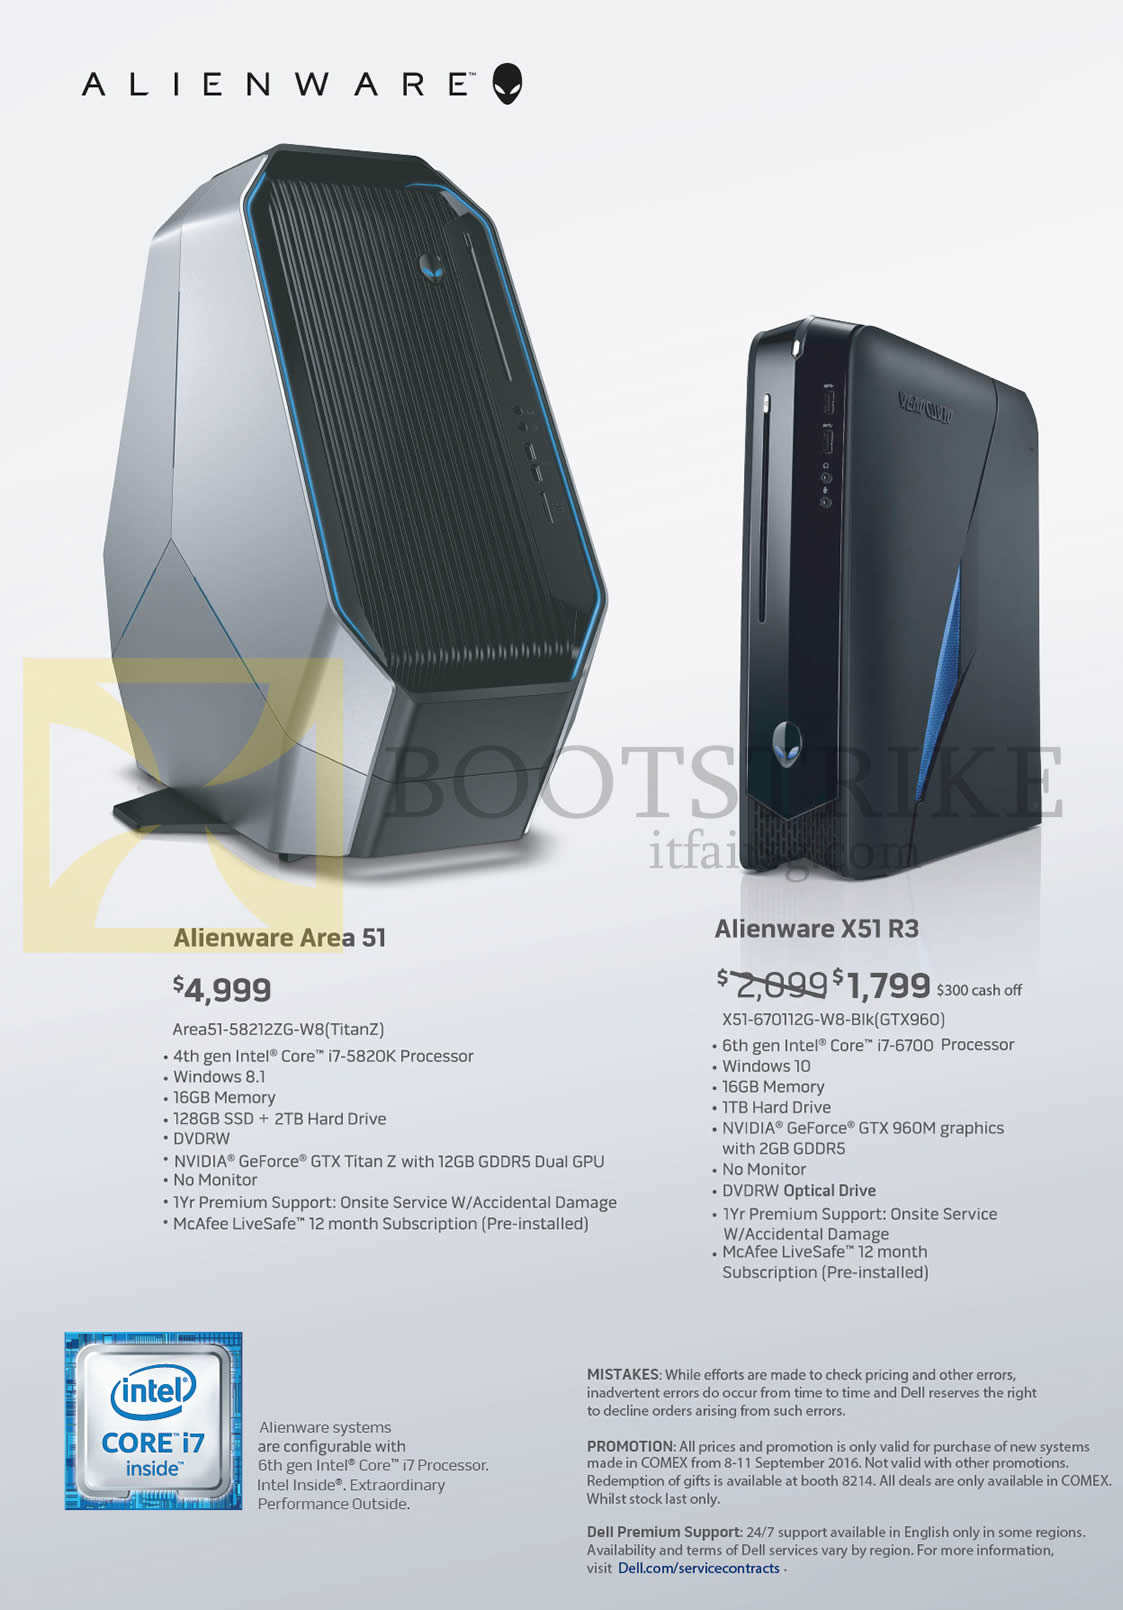 Dell Desktop PCs Alienware Area 51, X51 R3 Series COMEX 2016 Price